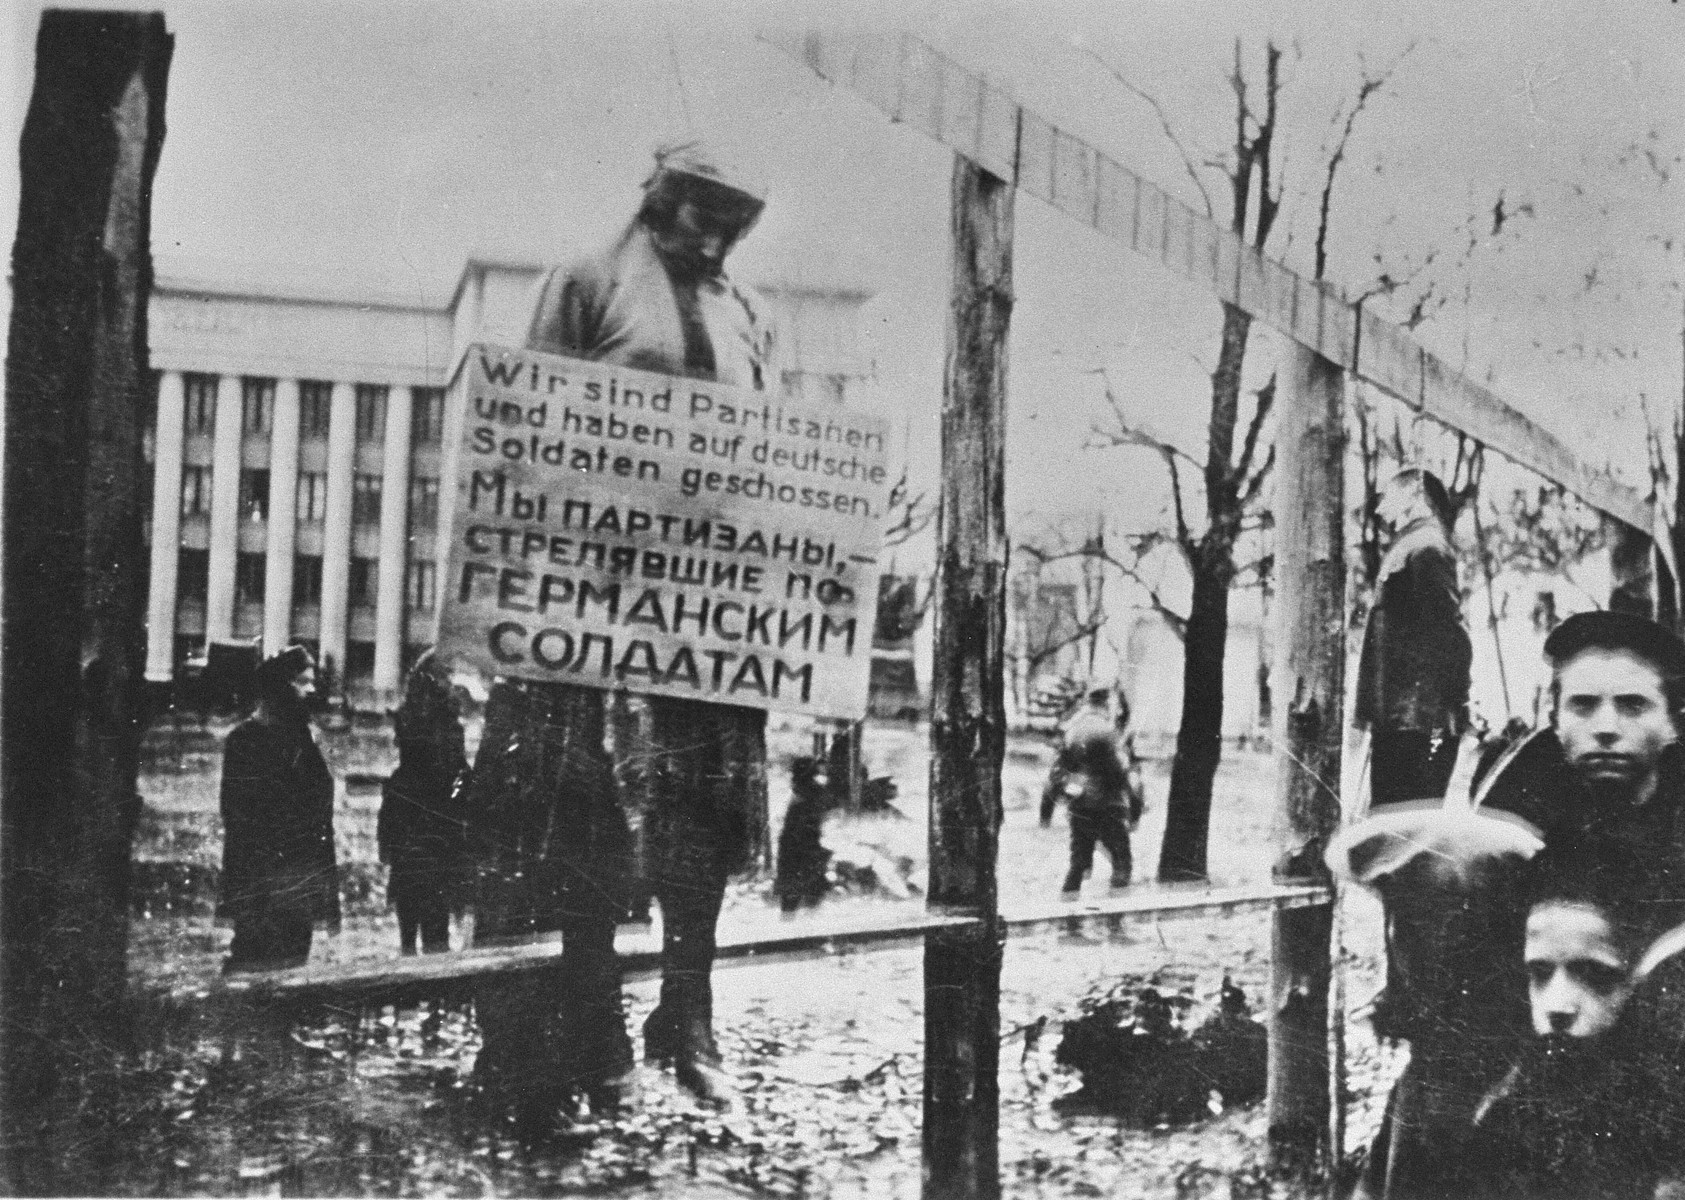 """The public hanging of three members of the Communist underground on Karl Marx Street in Minsk.  One of the victims wears a large placard around his neck that reads """"We are partisans and have shot at German soldiers.""""  This execution was one of four carried out in Minsk on 26 October 1941 by German troops with the 707th Infantry Division.  Altogether, twelve members of the Communist underground were publicly hanged in four groups of three near a yeast-making factory.  This is believed to be the first public execution after the German invasion of the Soviet Union and it included the hanging of Masha Bruskina, a young Jewish woman.  In each of the four cases, the bodies were left to hang for several days to serve as a warning to would-be resisters."""